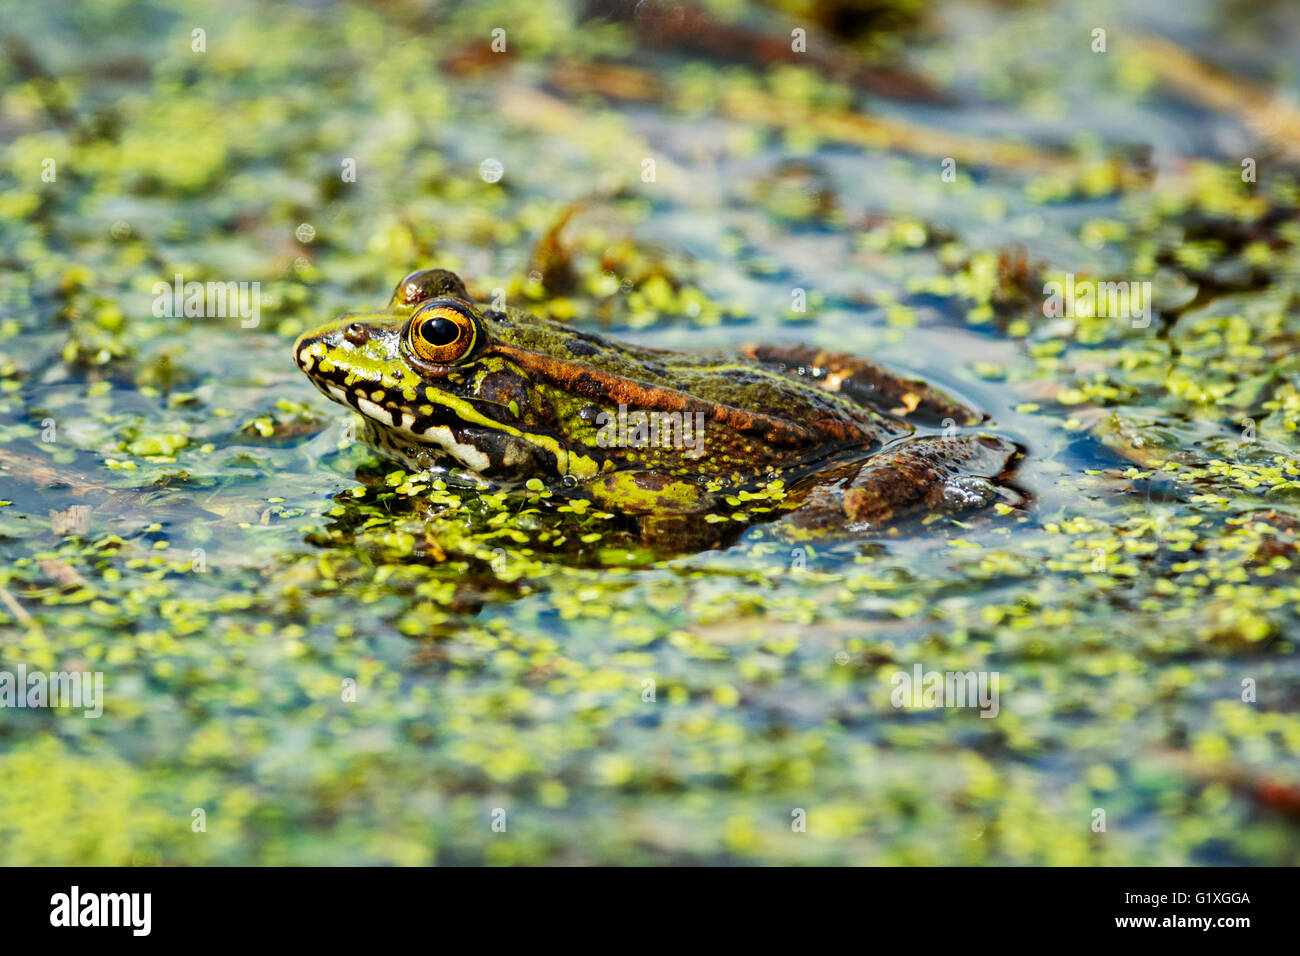 A marsh frog blending in with its surroundings - Stock Image